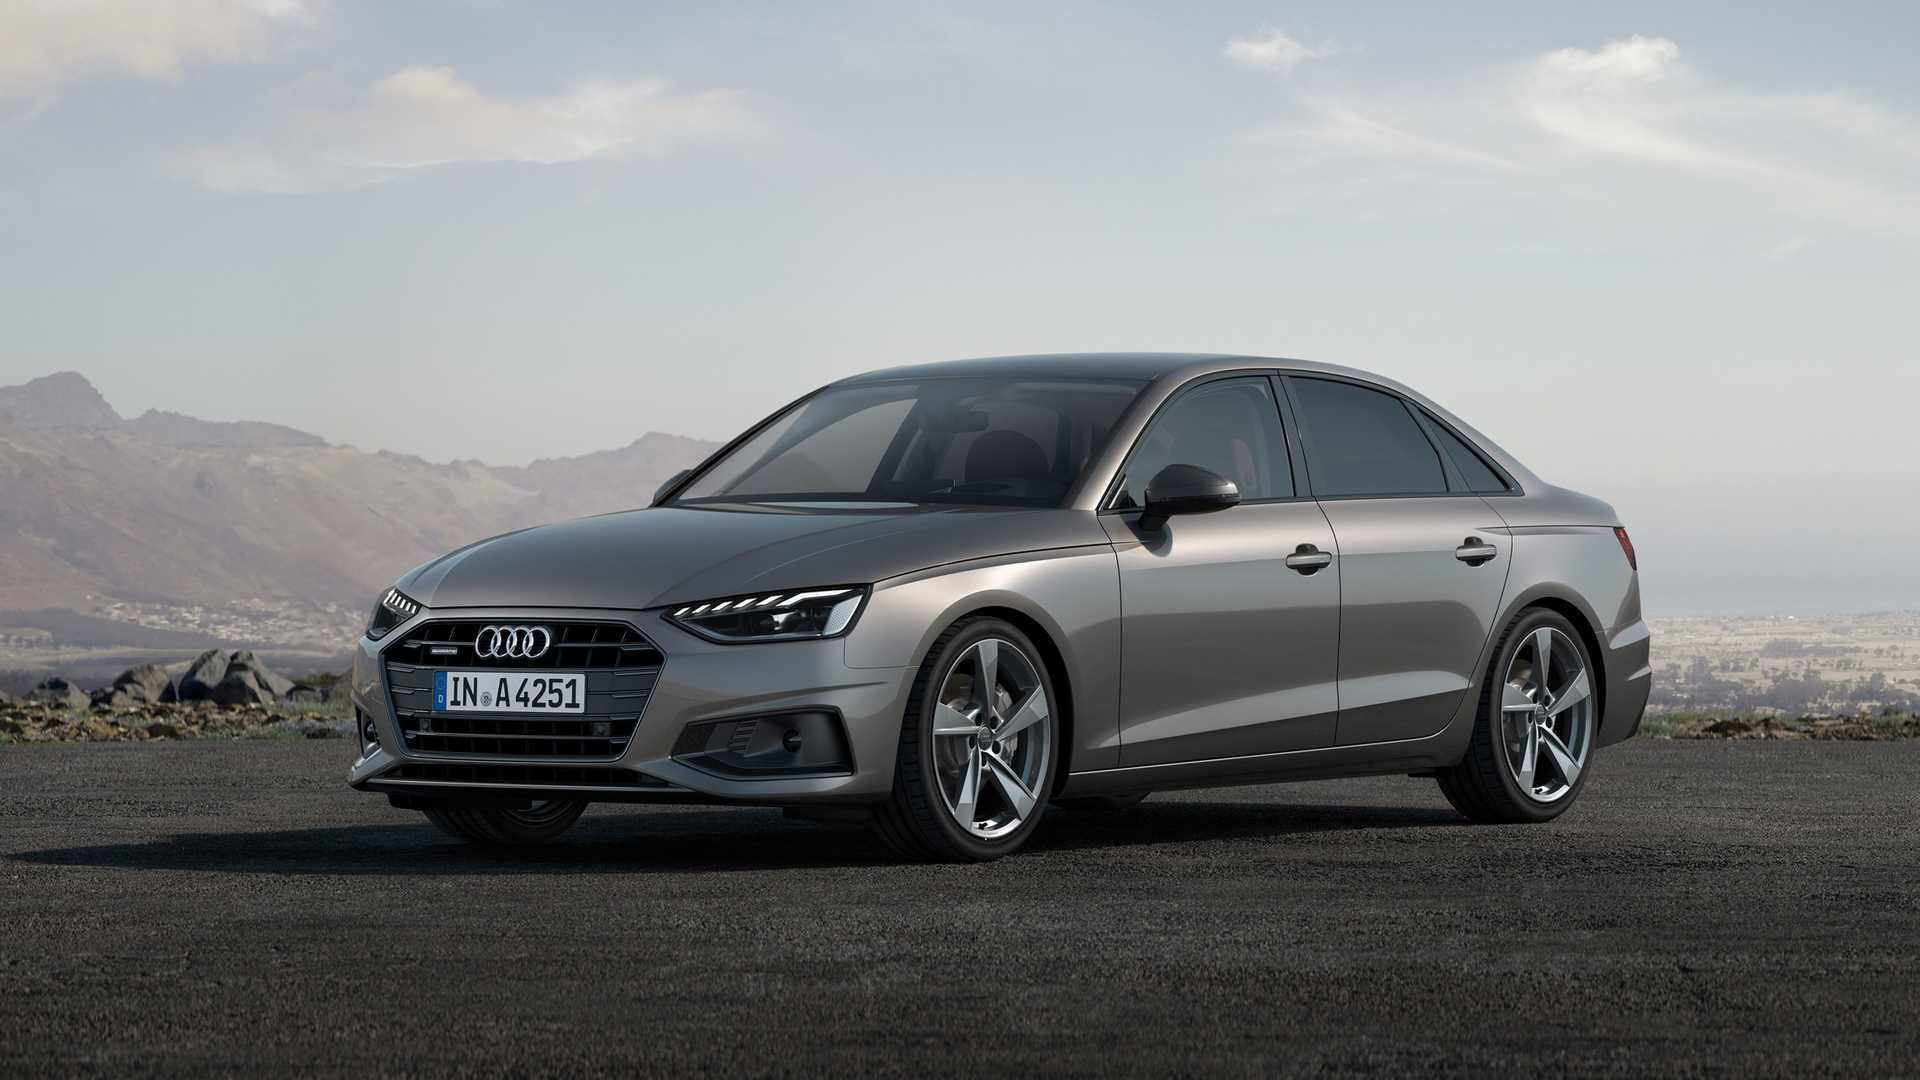 2021 Audi A4 Review in 2020 Audi a4, Audi, Audi sport